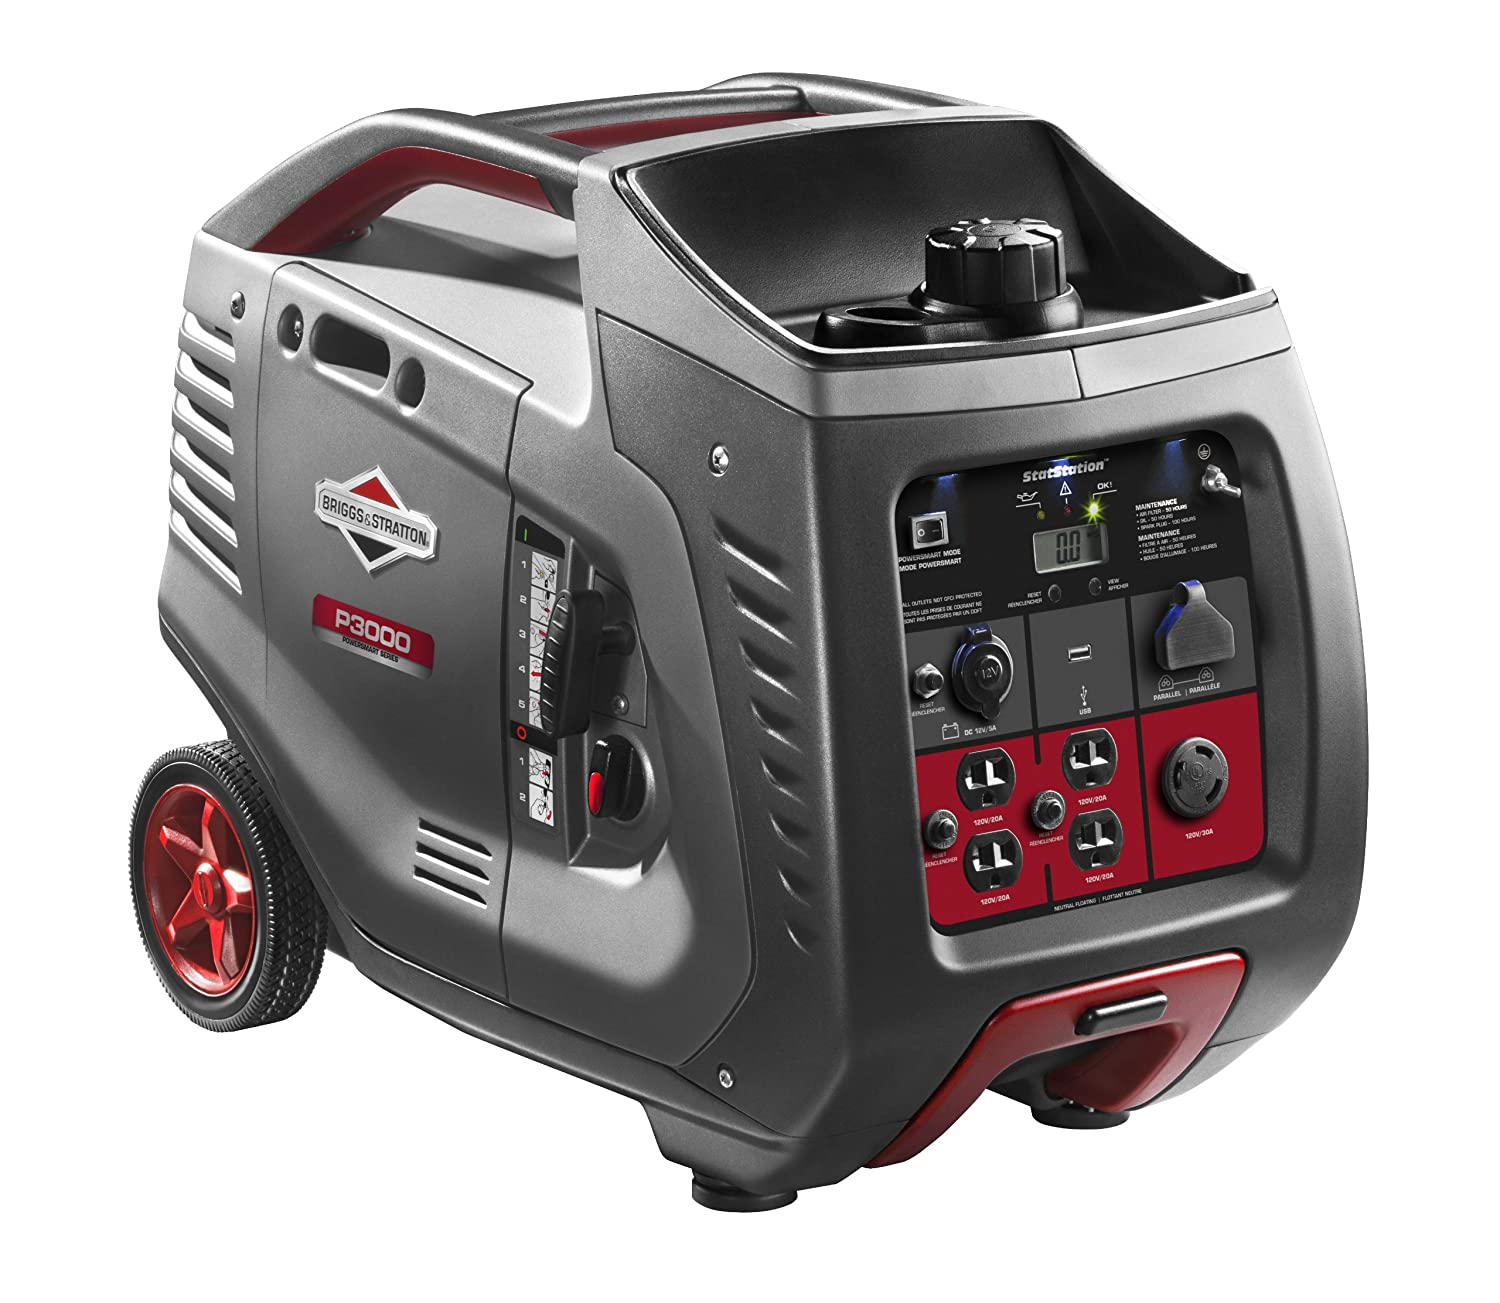 Briggs & Stratton 30545 P3000 PowerSmart 3000-Watt Inverter Generator with (4) 120-Volt AC Outlets & (1) 12-Volt DC Outlet